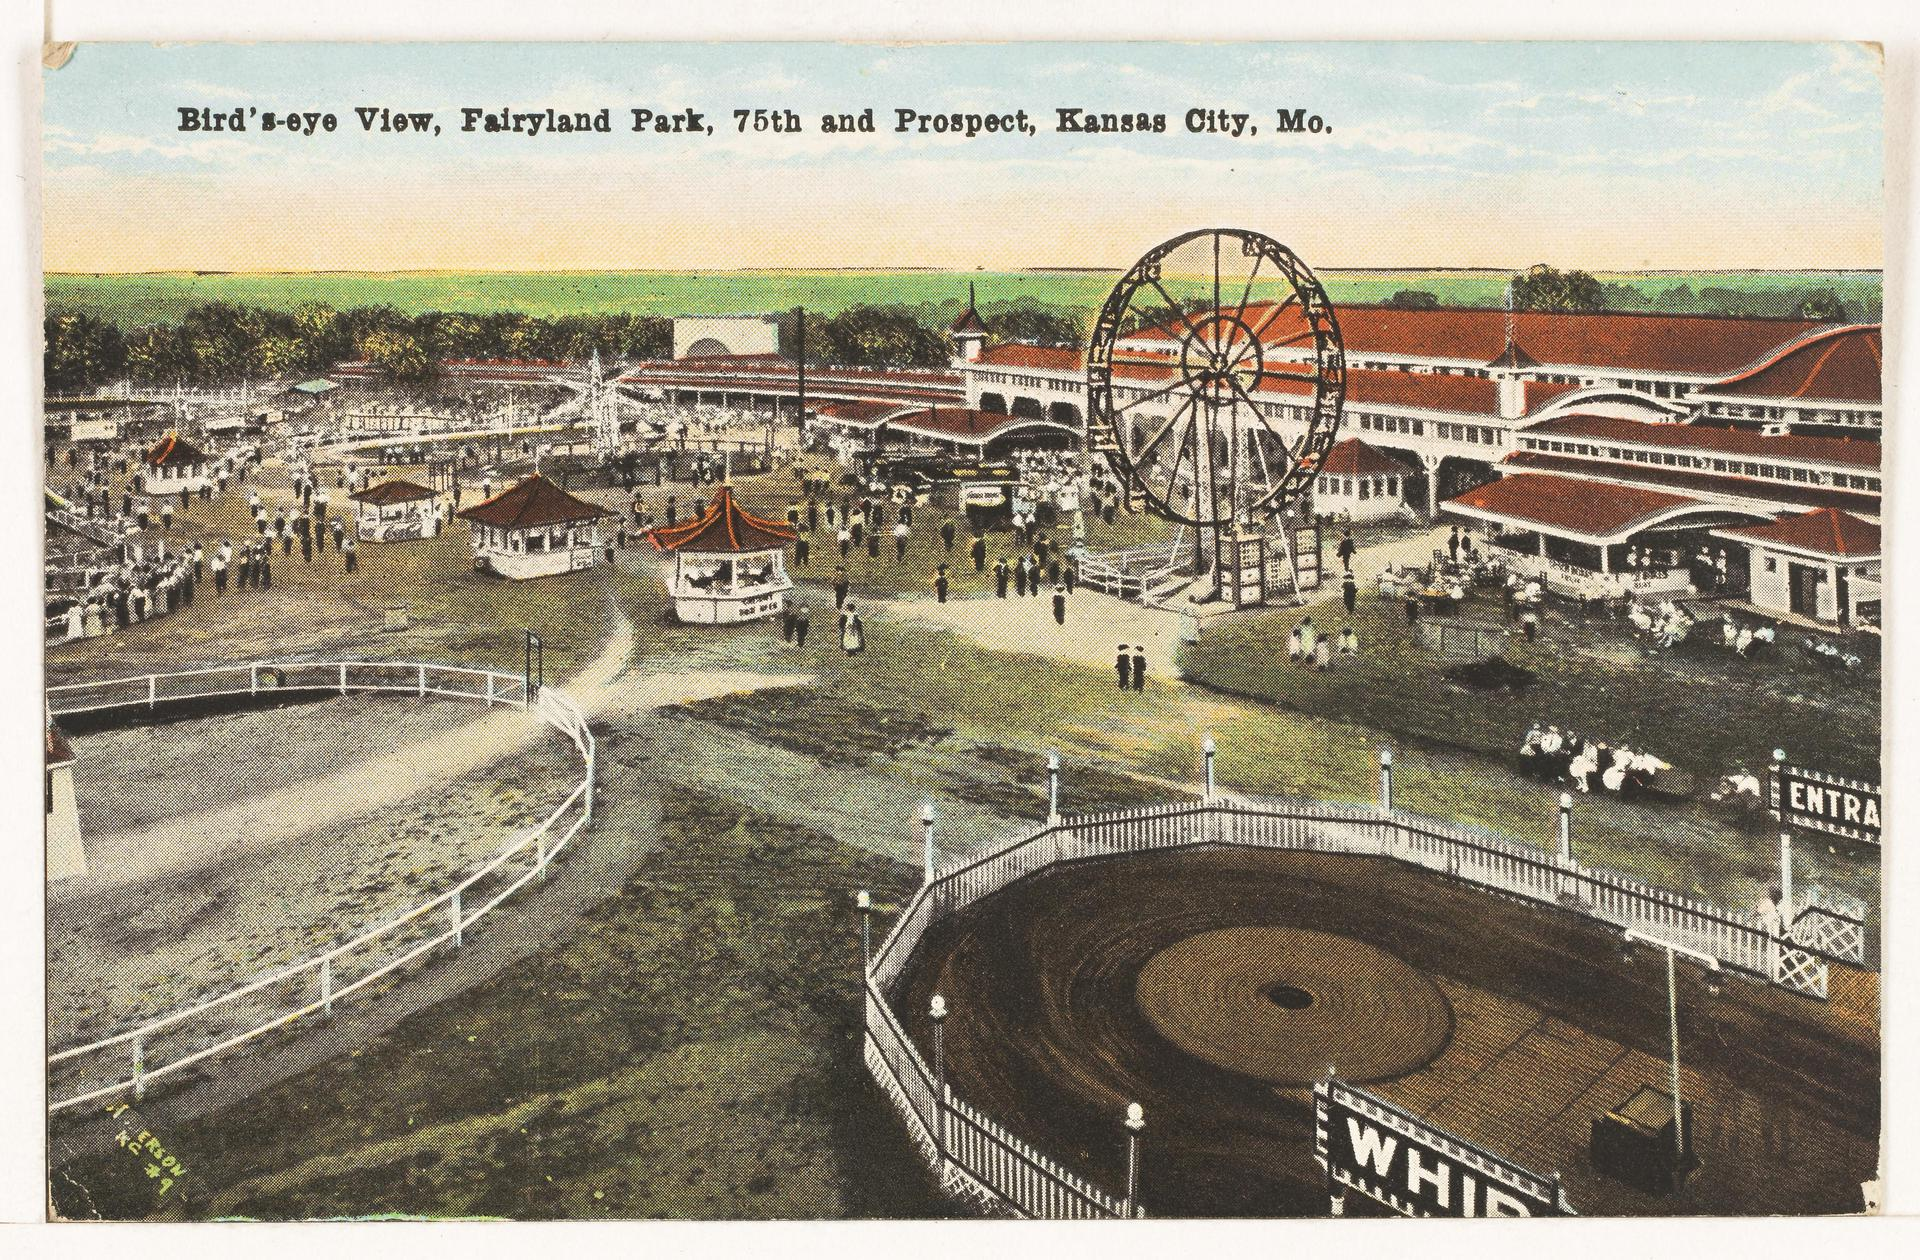 A postcard aerial view of rides and buildings located at Fairyland Park.